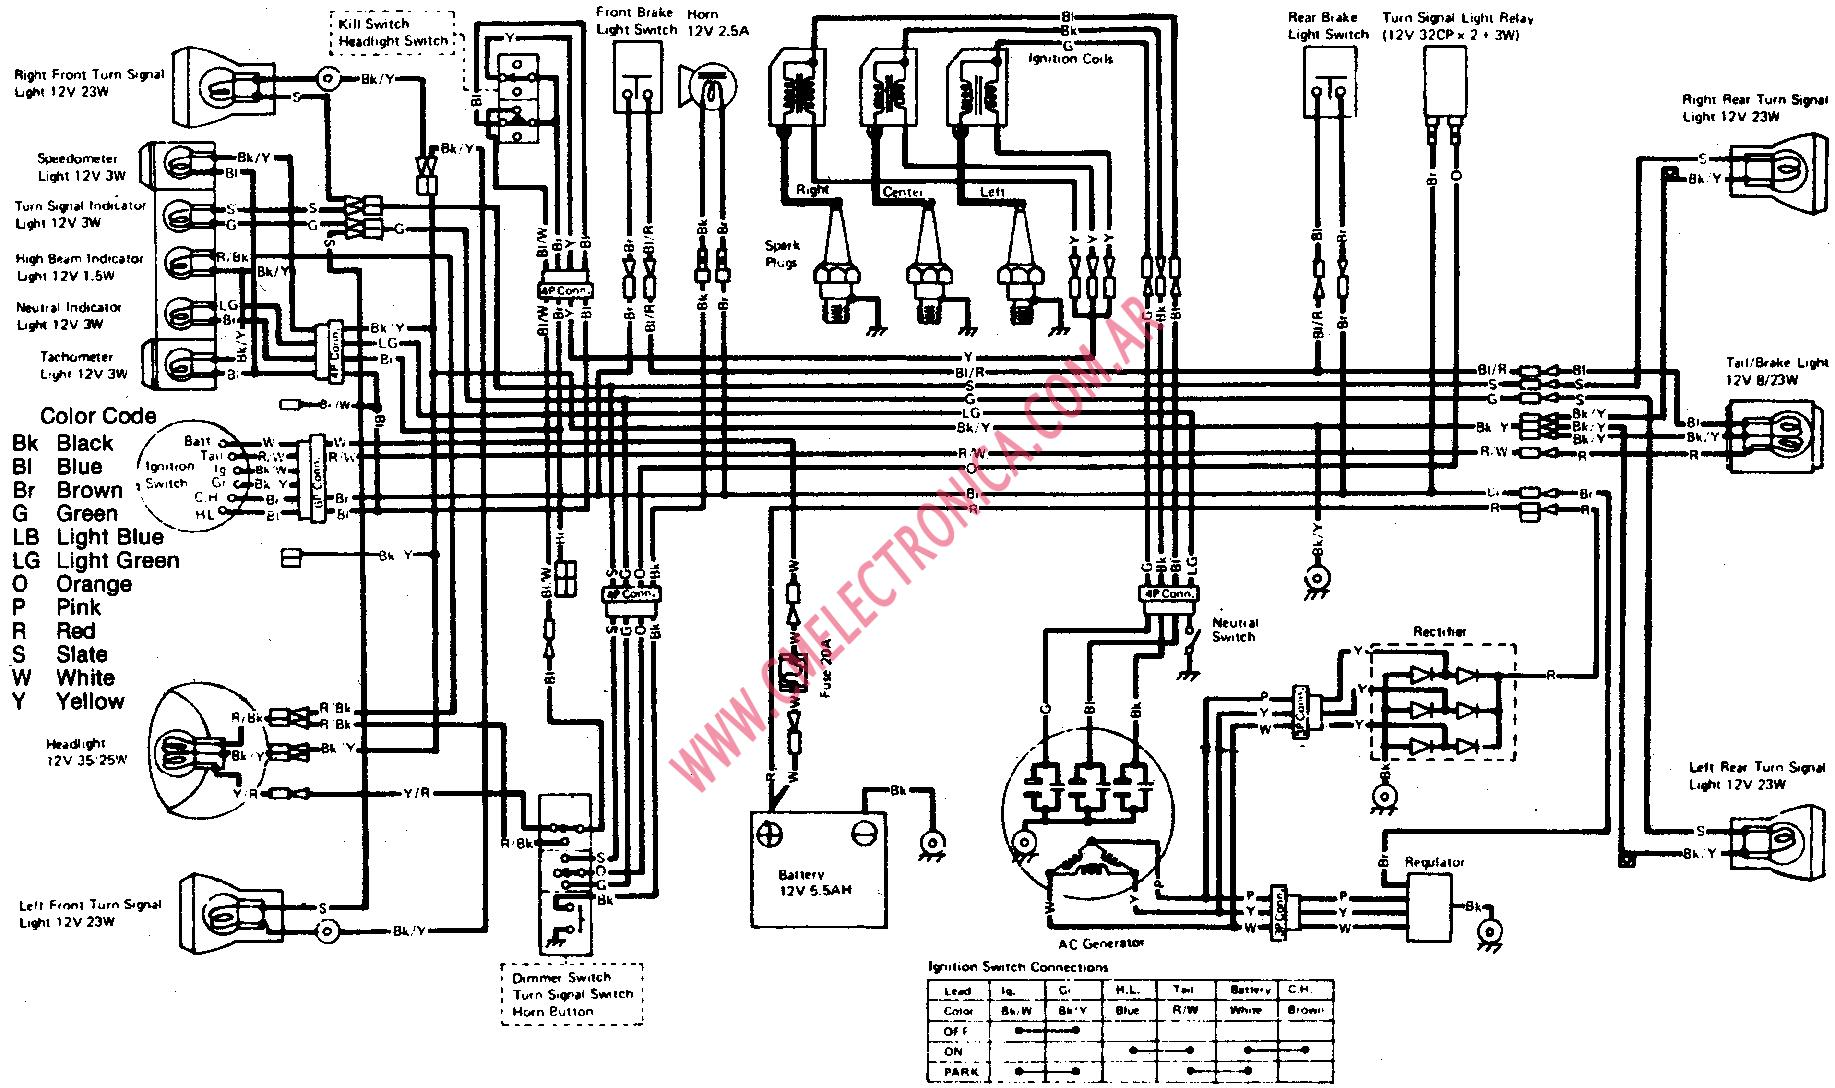 hight resolution of 1988 kawasaki bayou 220 wiring schematic auto electrical wiring rh harvard edu co uk iico me